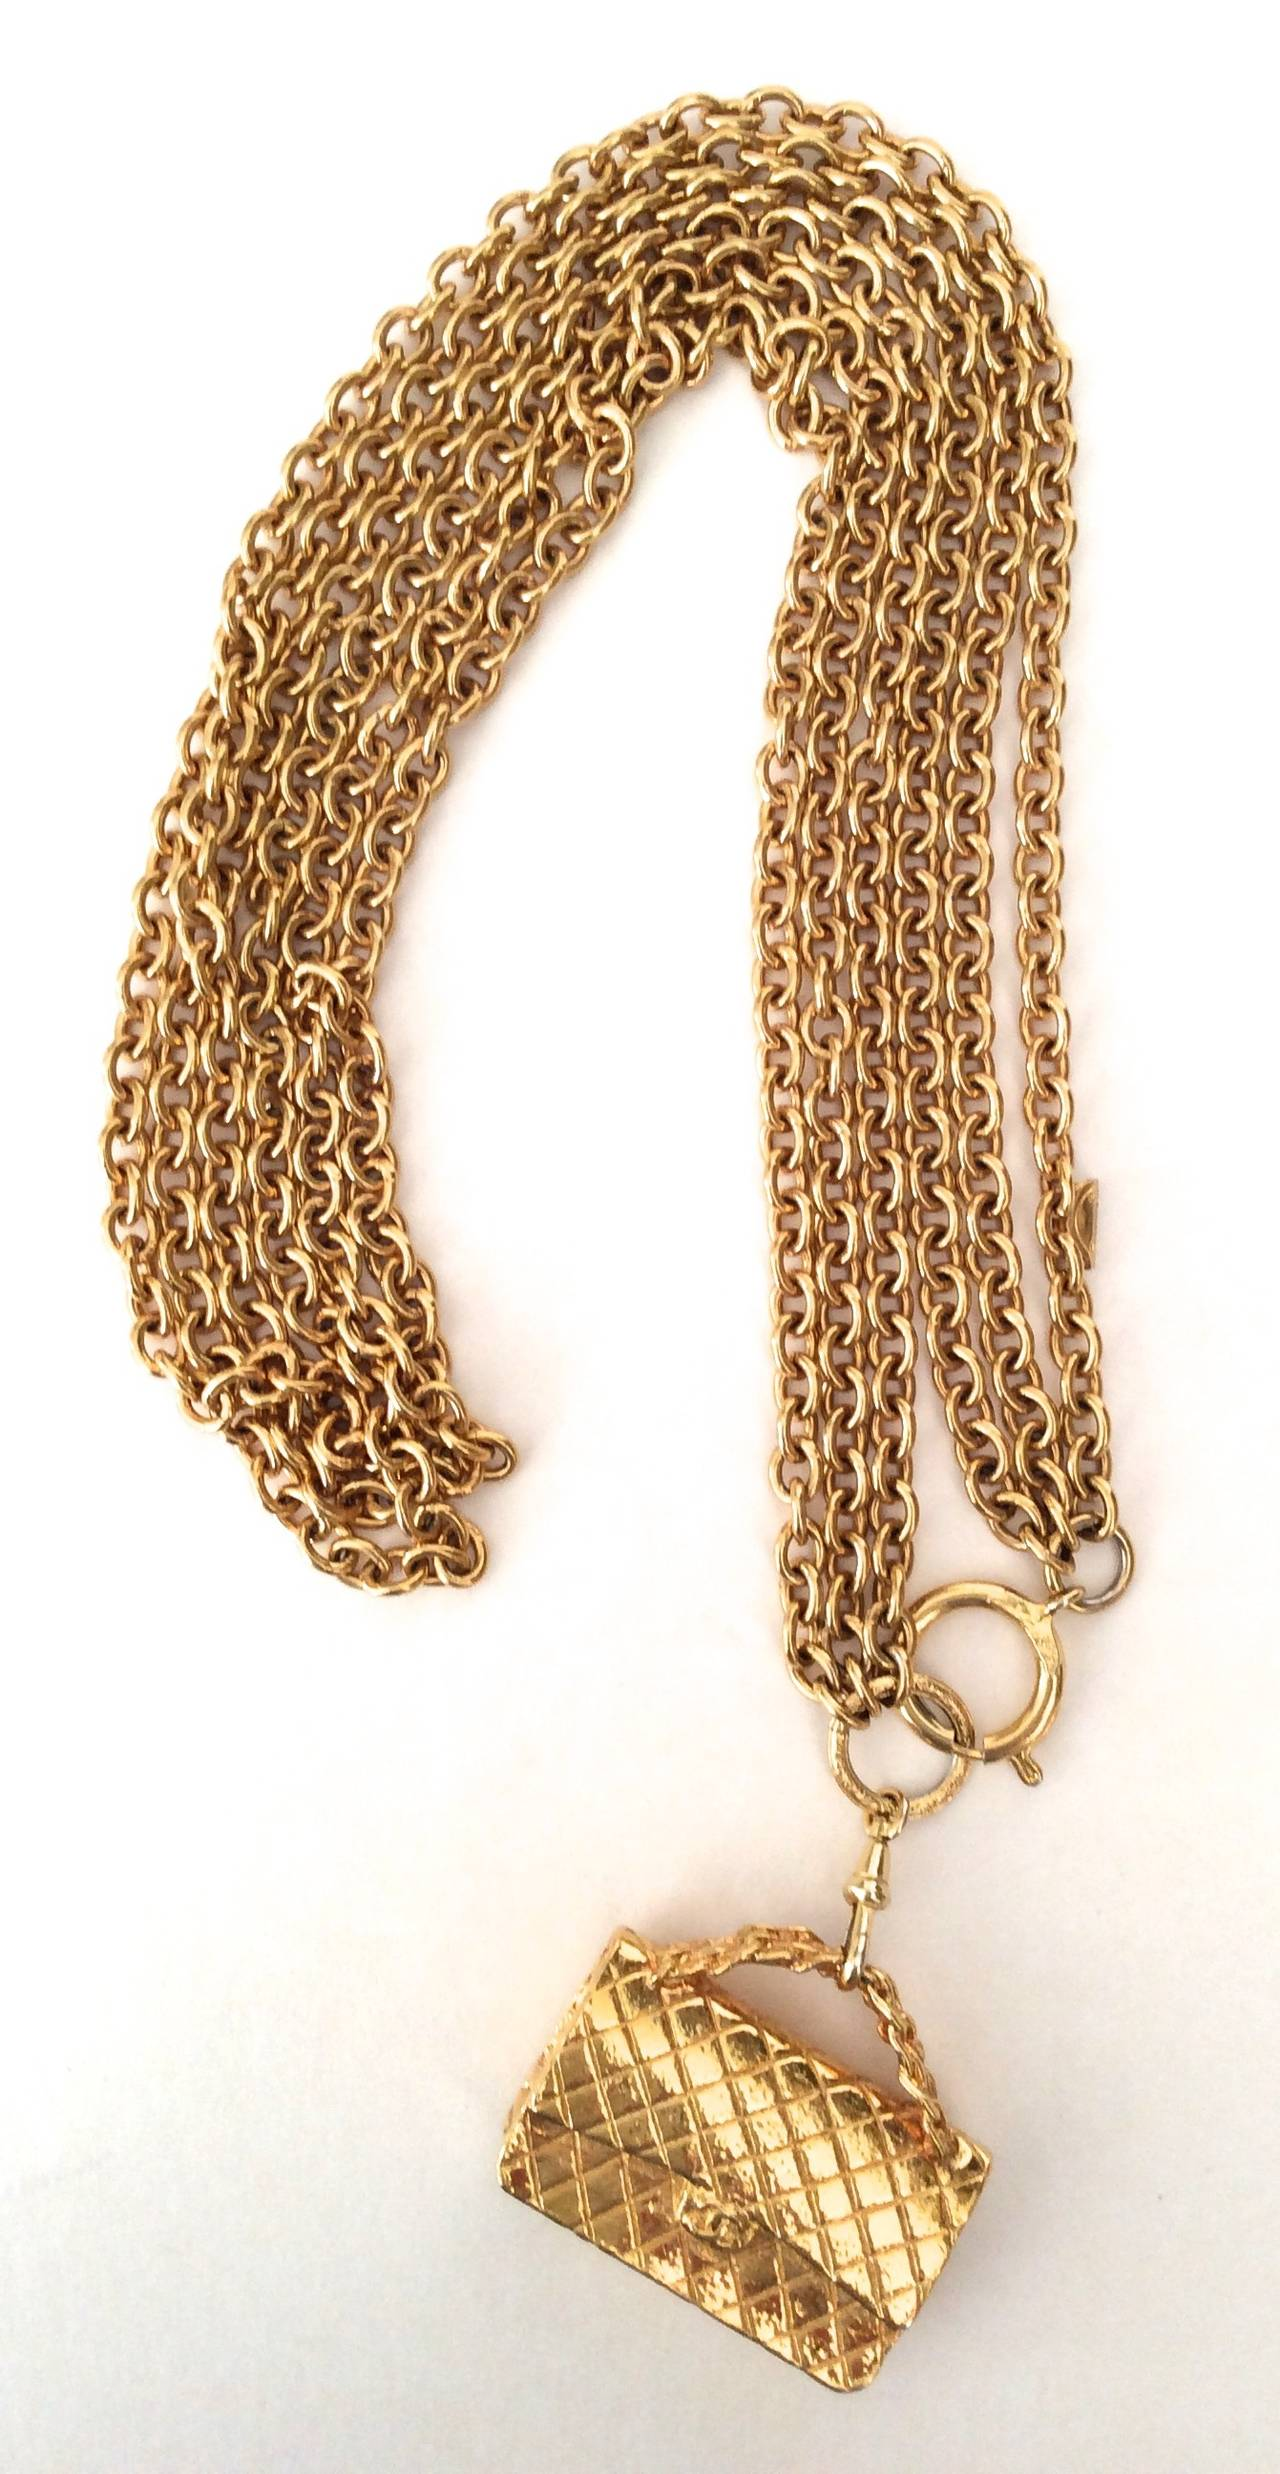 Gold Tone Chanel Triple Chain Necklace with Iconic Purse Pendant 8